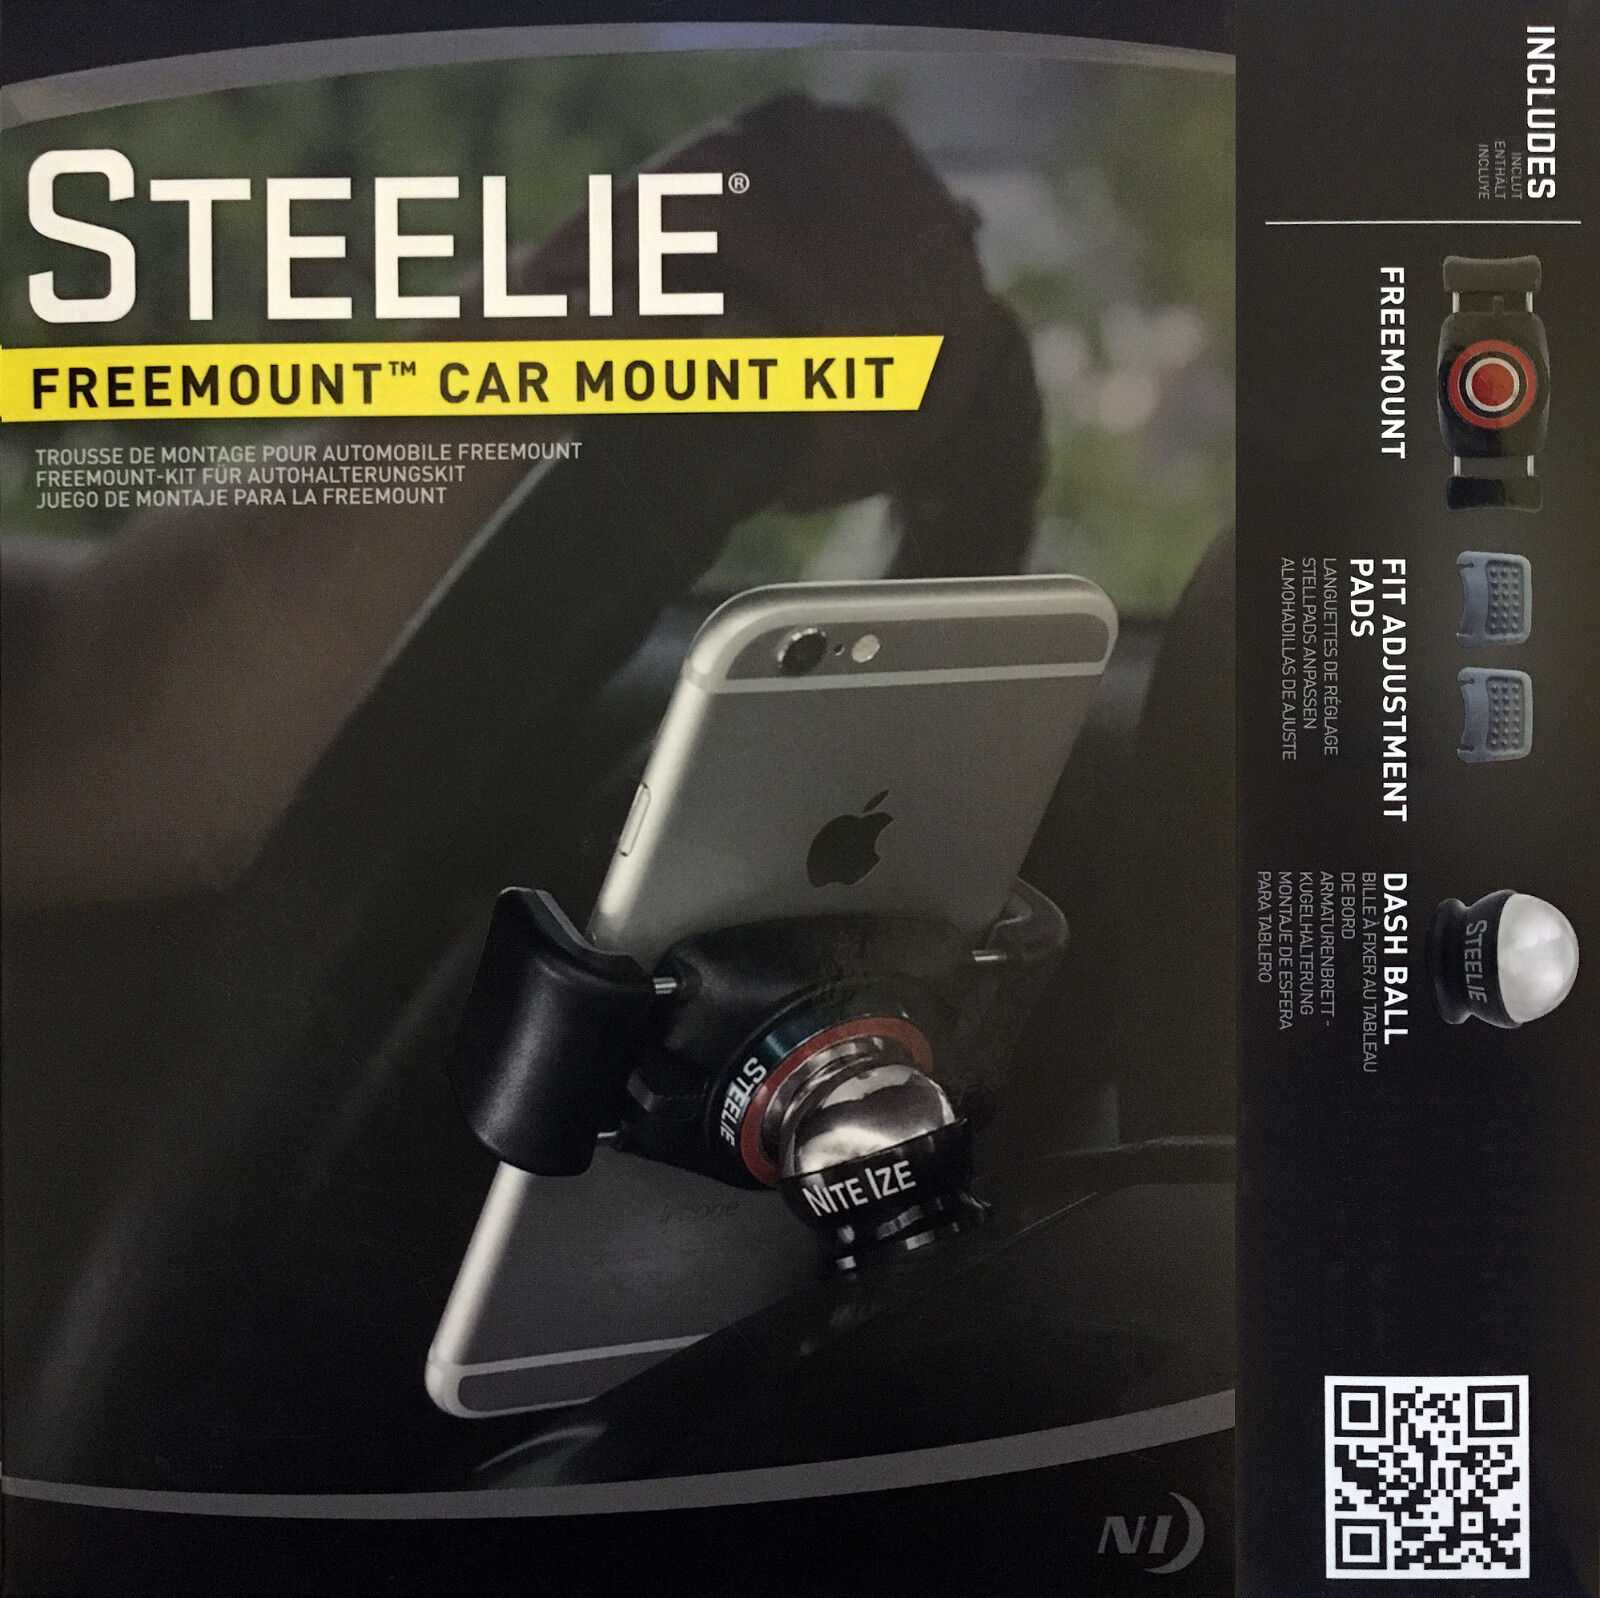 Купить Nite Ize Steelie Freemount Car Mount Kit w/ Dash Ball STFD-01-R8 - Universal